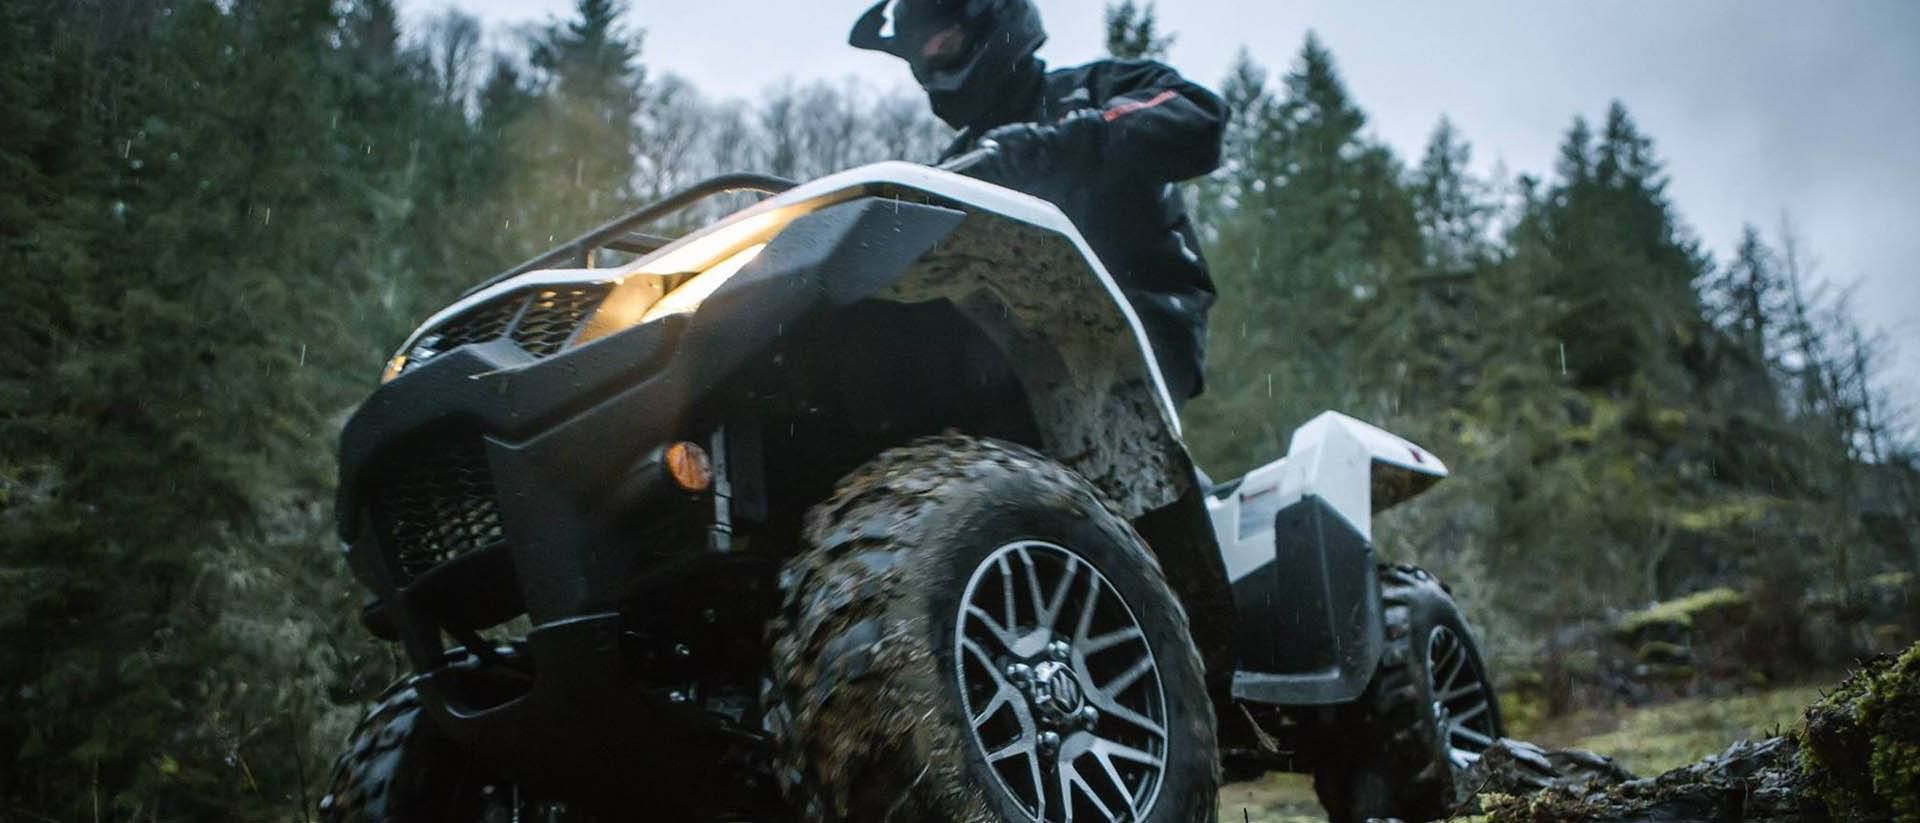 Suzuki ATVs for sale at Middletown Cycle in Franklin, OH